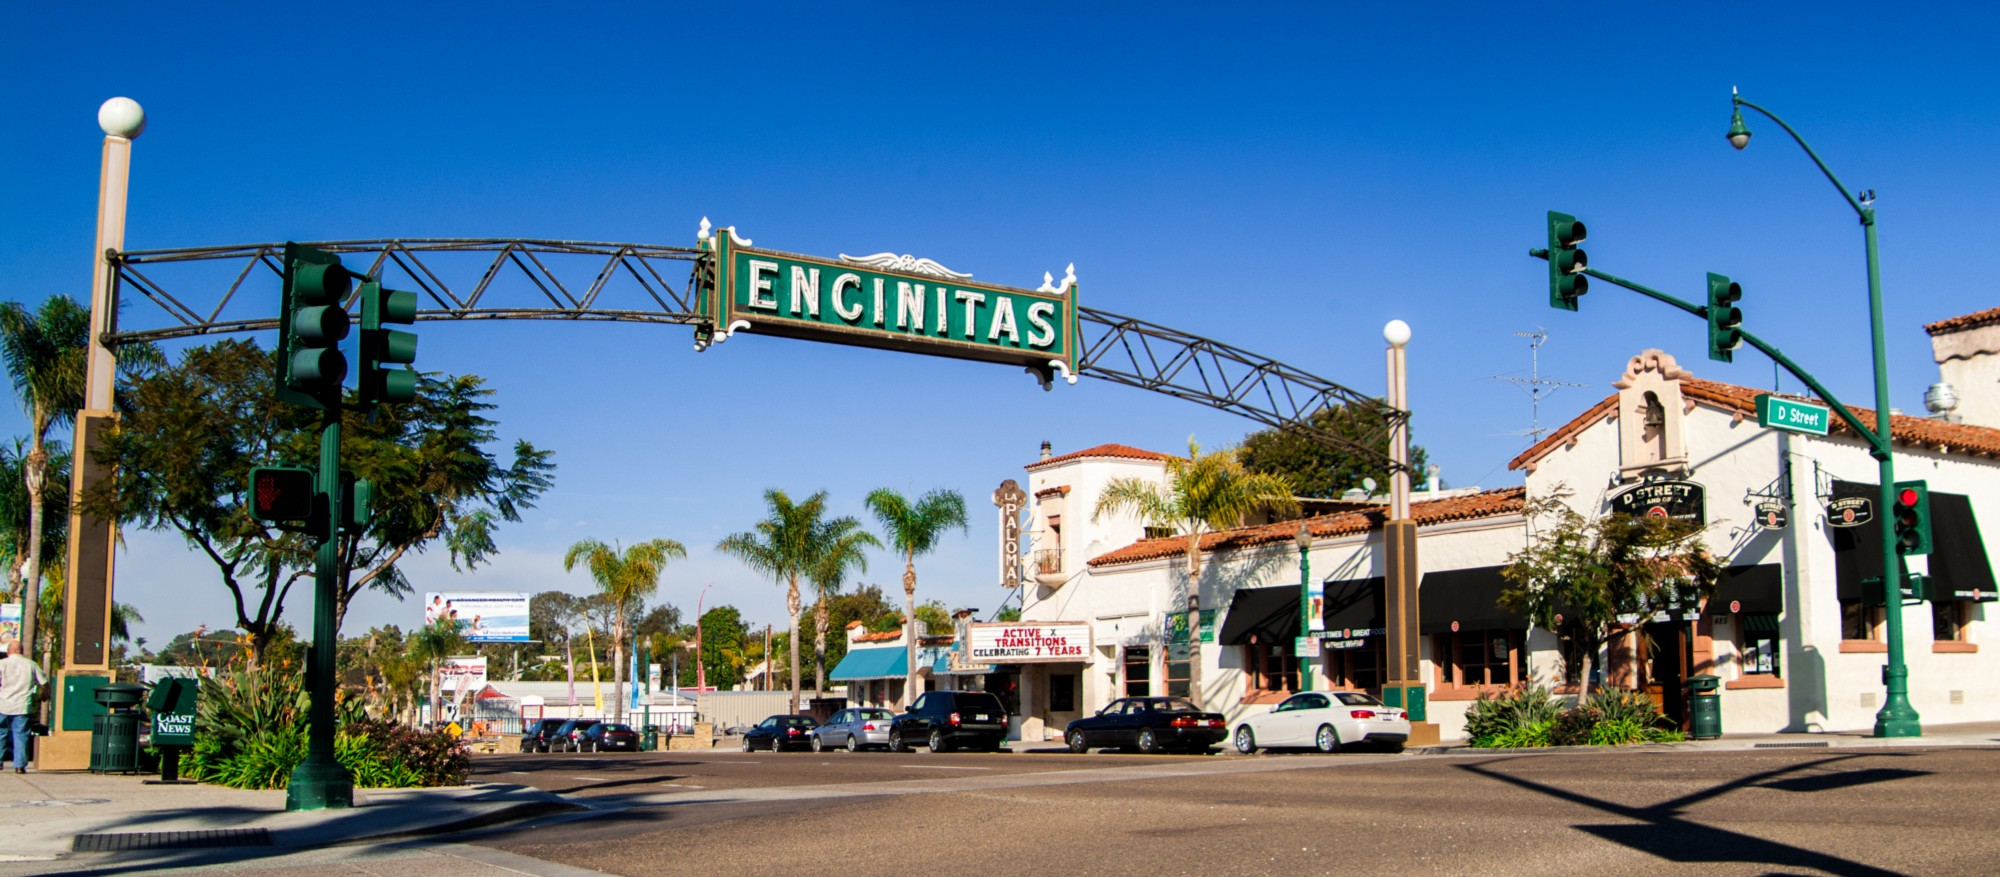 ENCINItAS  - laid back, cool village with beach vibe, restaurants and great street scape